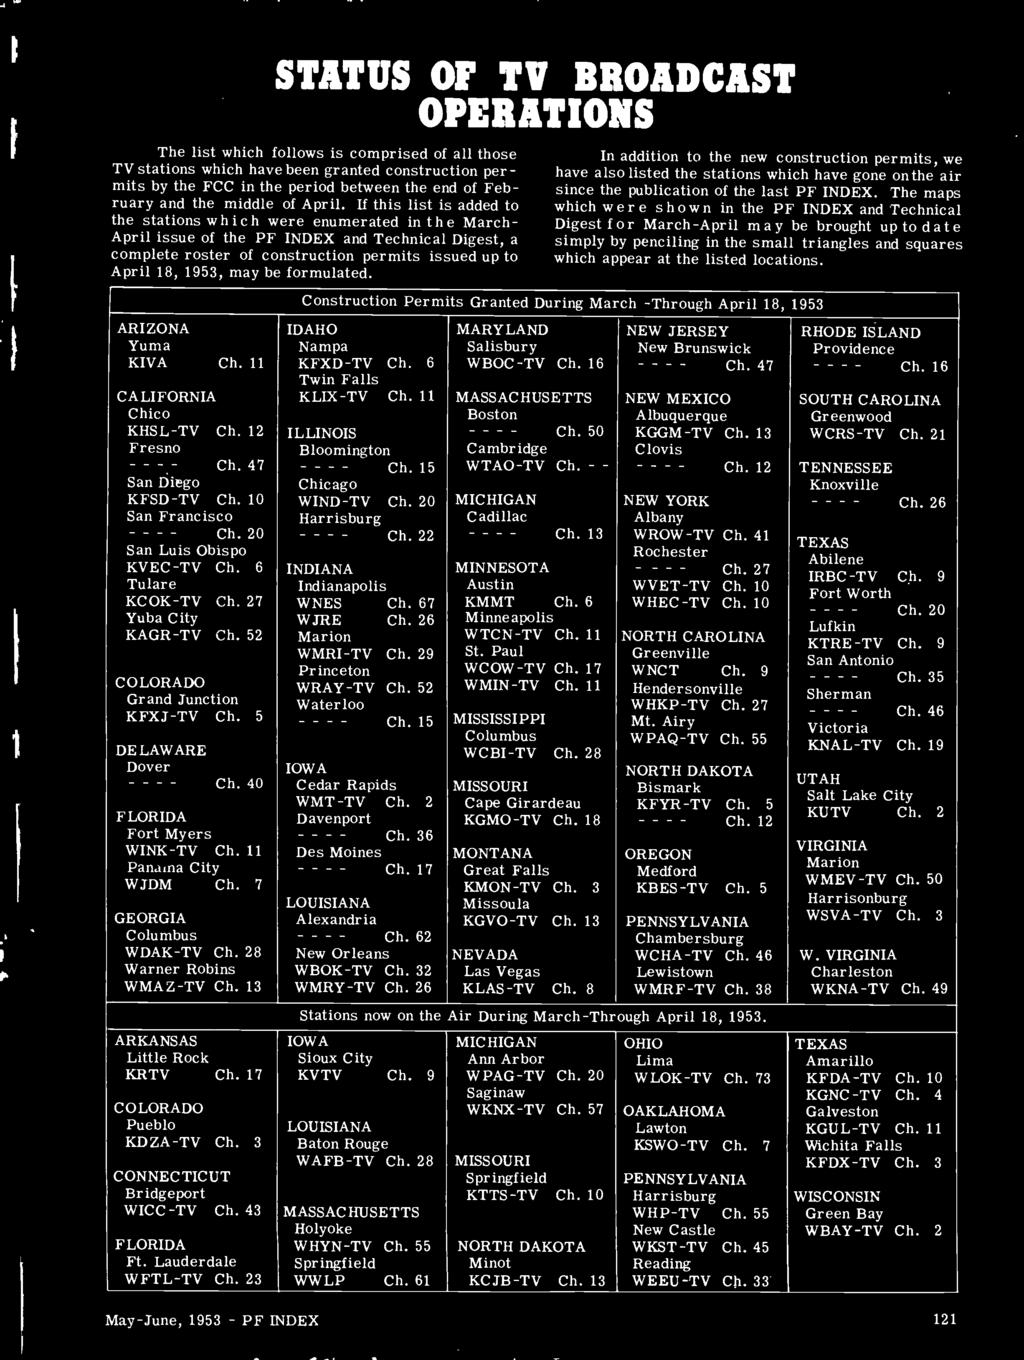 If this list is added to the stations which were enumerated in the March - April issue of the PF INDEX and Technical Digest, a complete roster of construction permits issued up to April 18, 1953, may